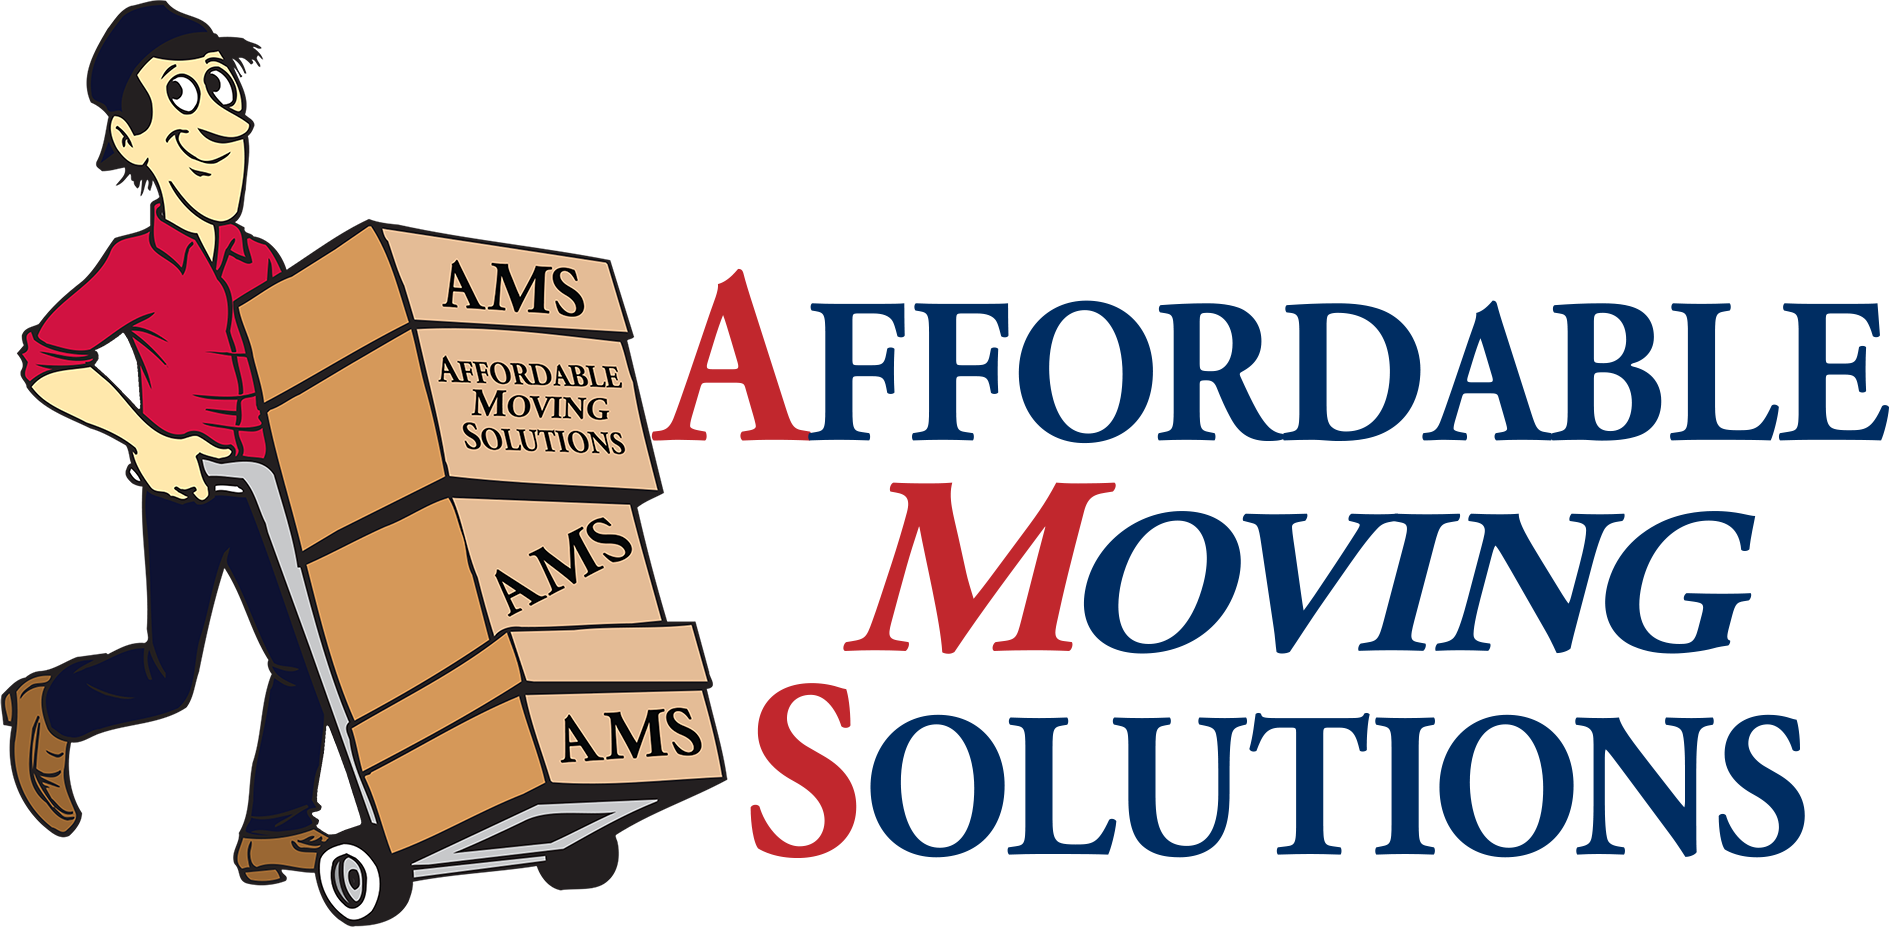 Furniture clipart furniture movers. Affordable moving solutions charlotte